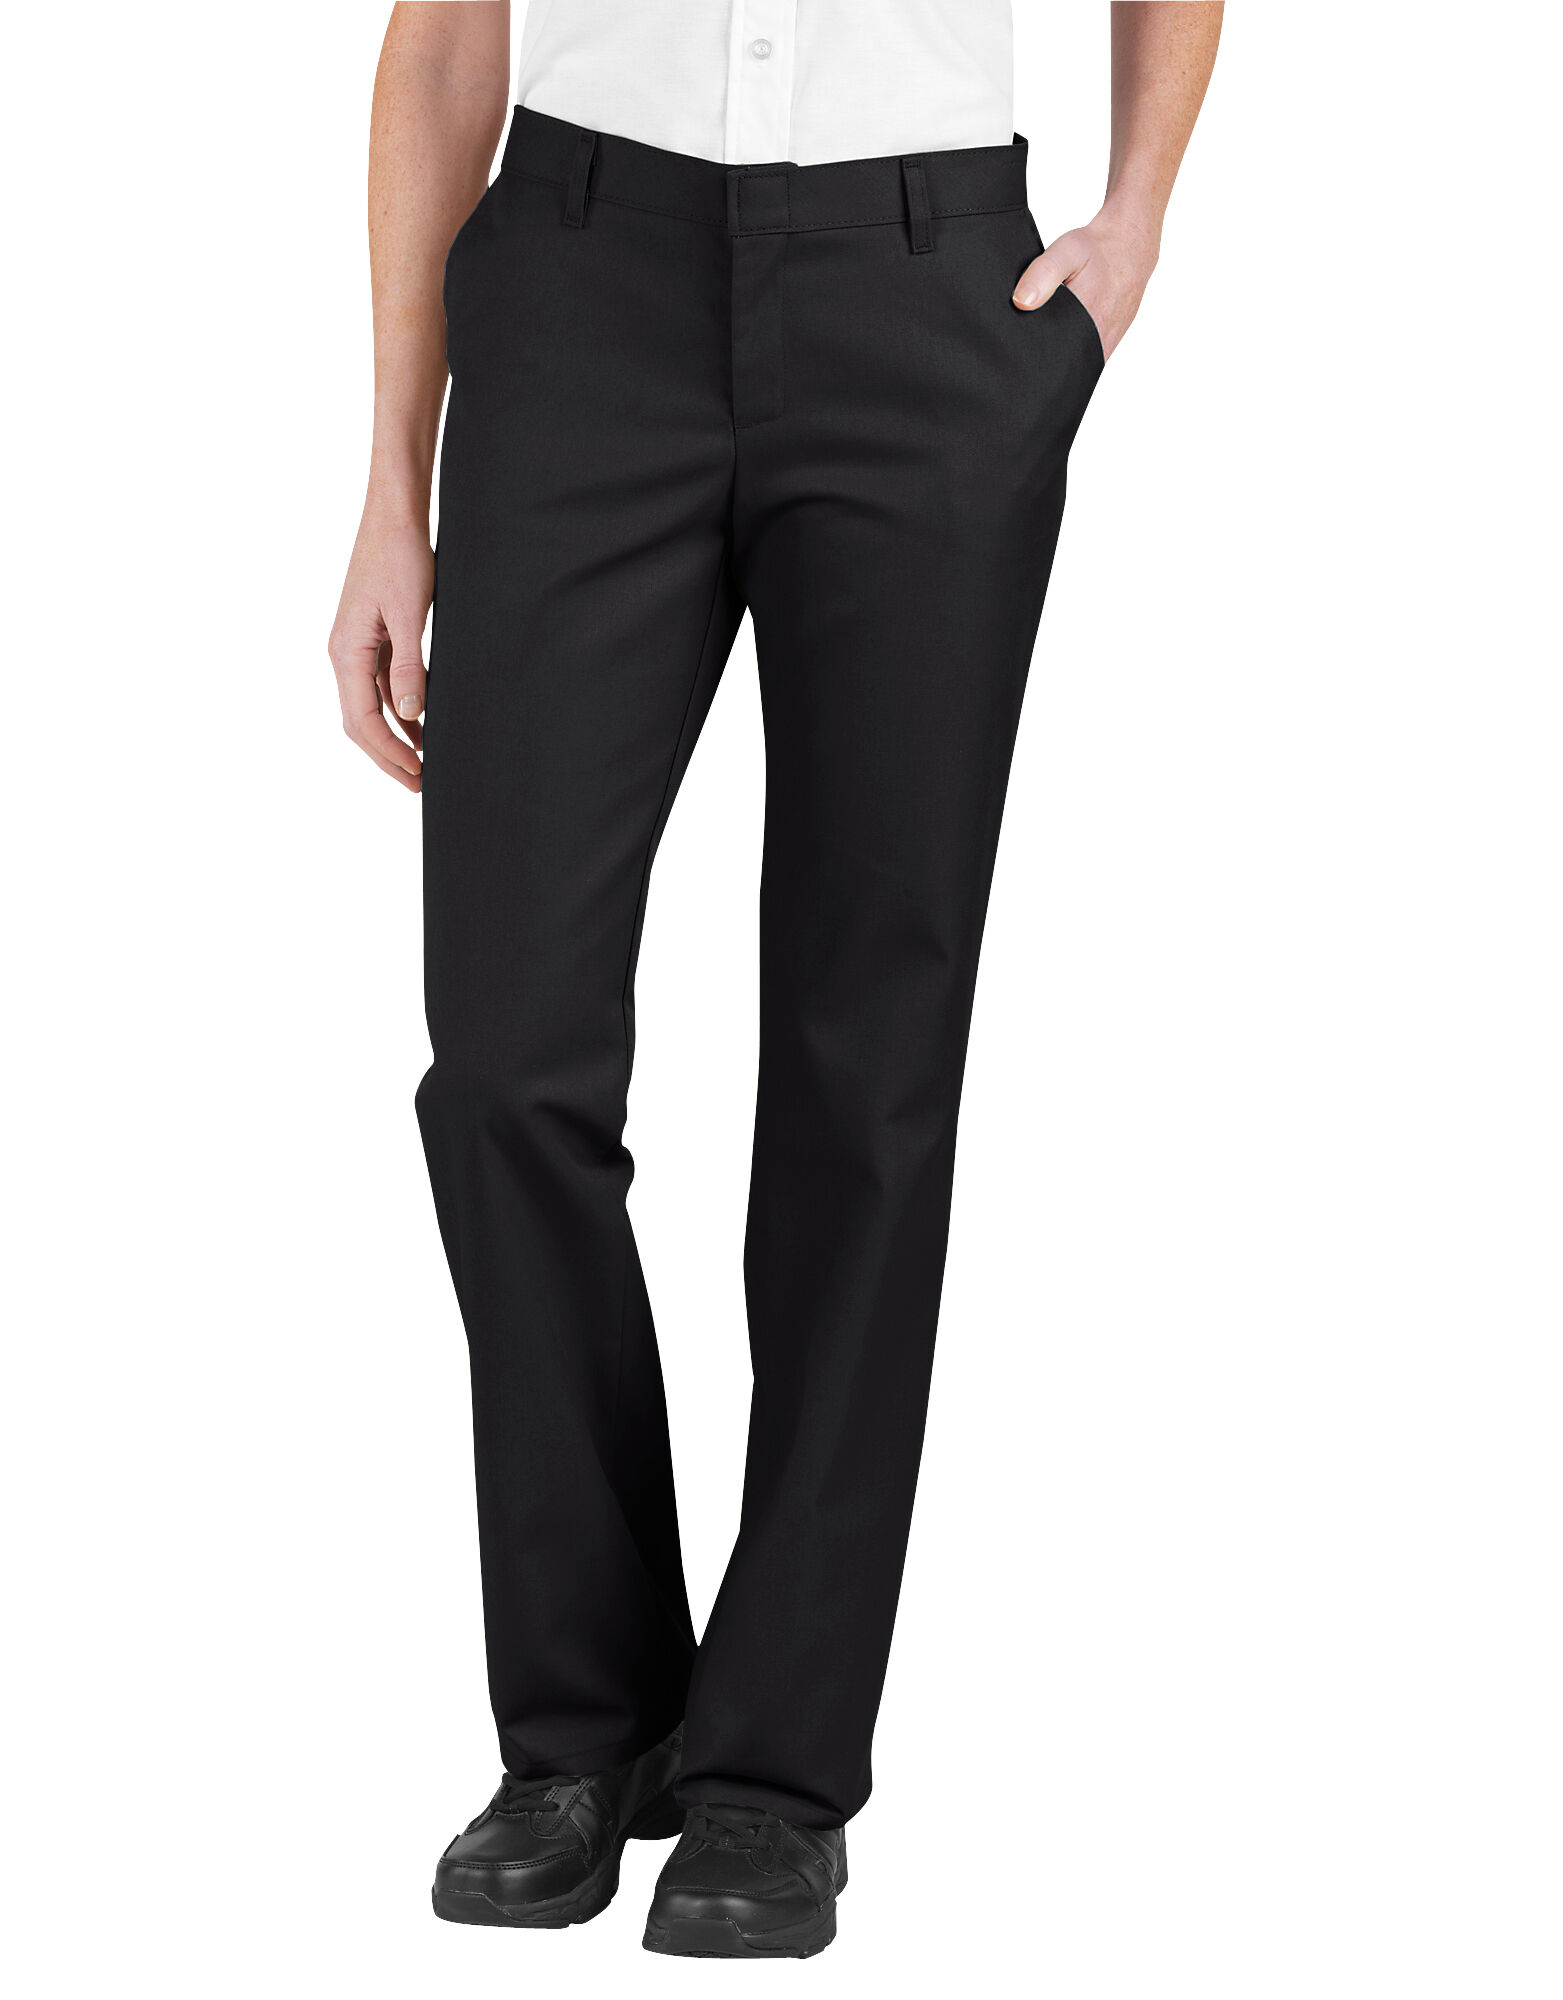 Women's Relaxed Fit Flat Front Pant | Dickies